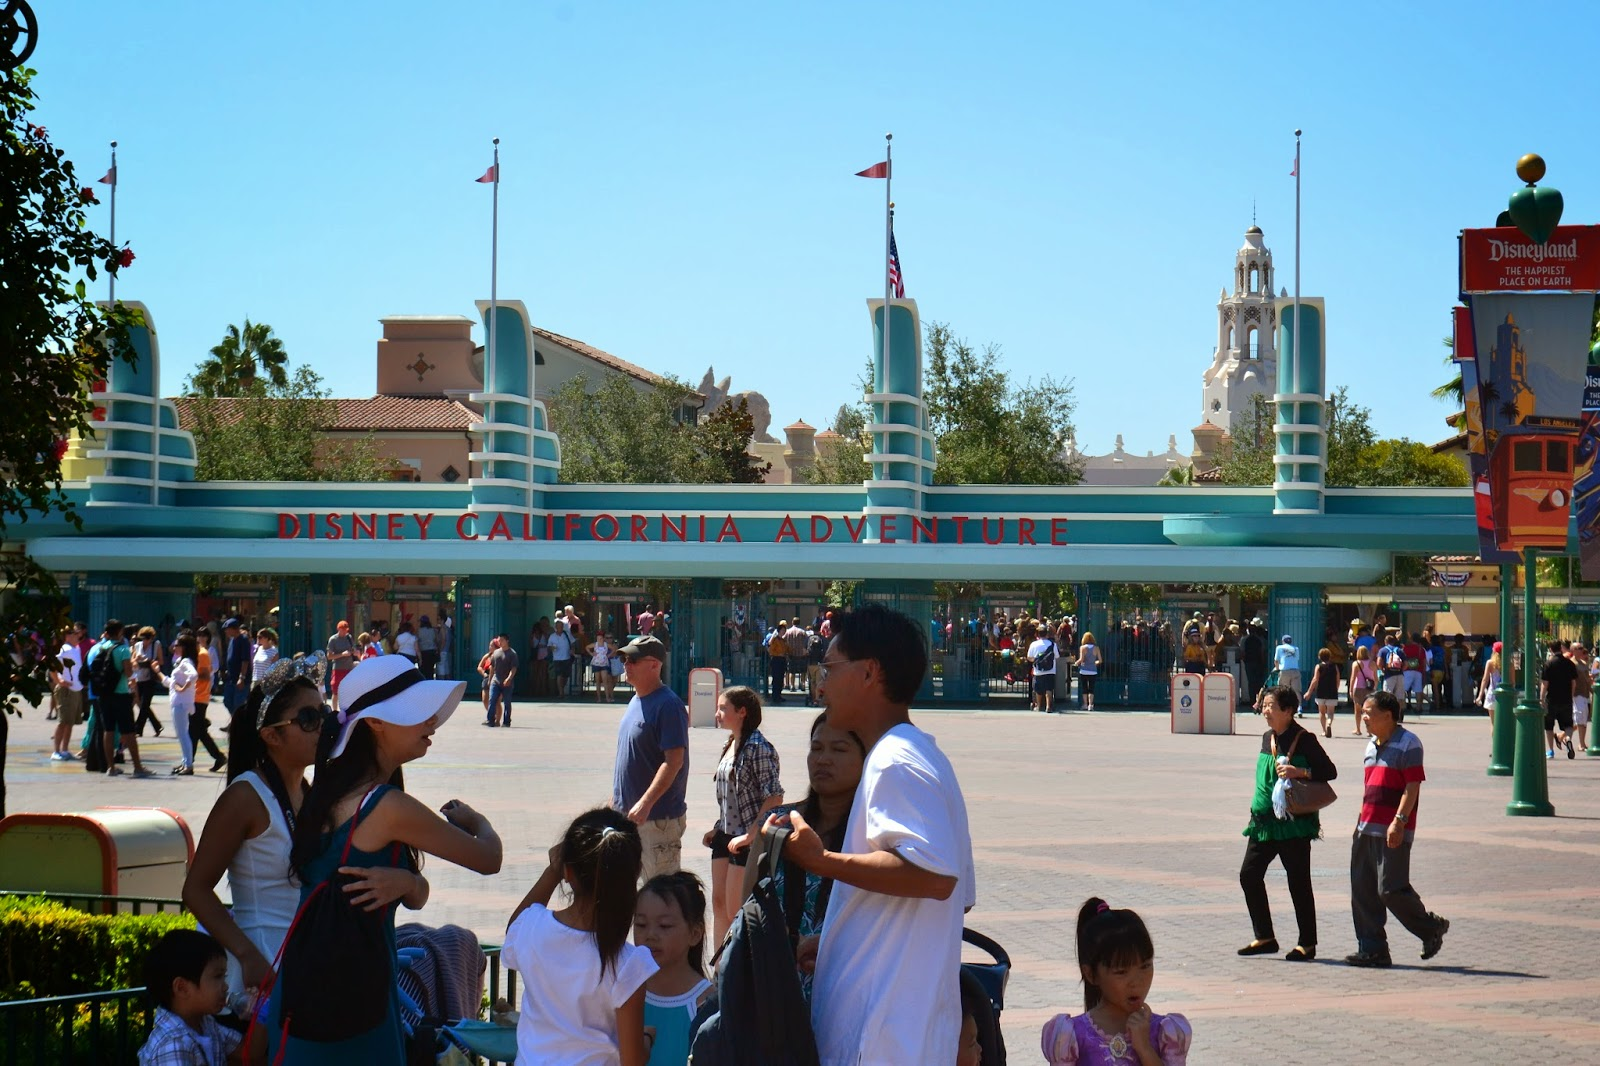 Travel USA, disneyland USA, Disneyland anaheim, walt disney, USA california, fantasyland, disney advanture, disney parade